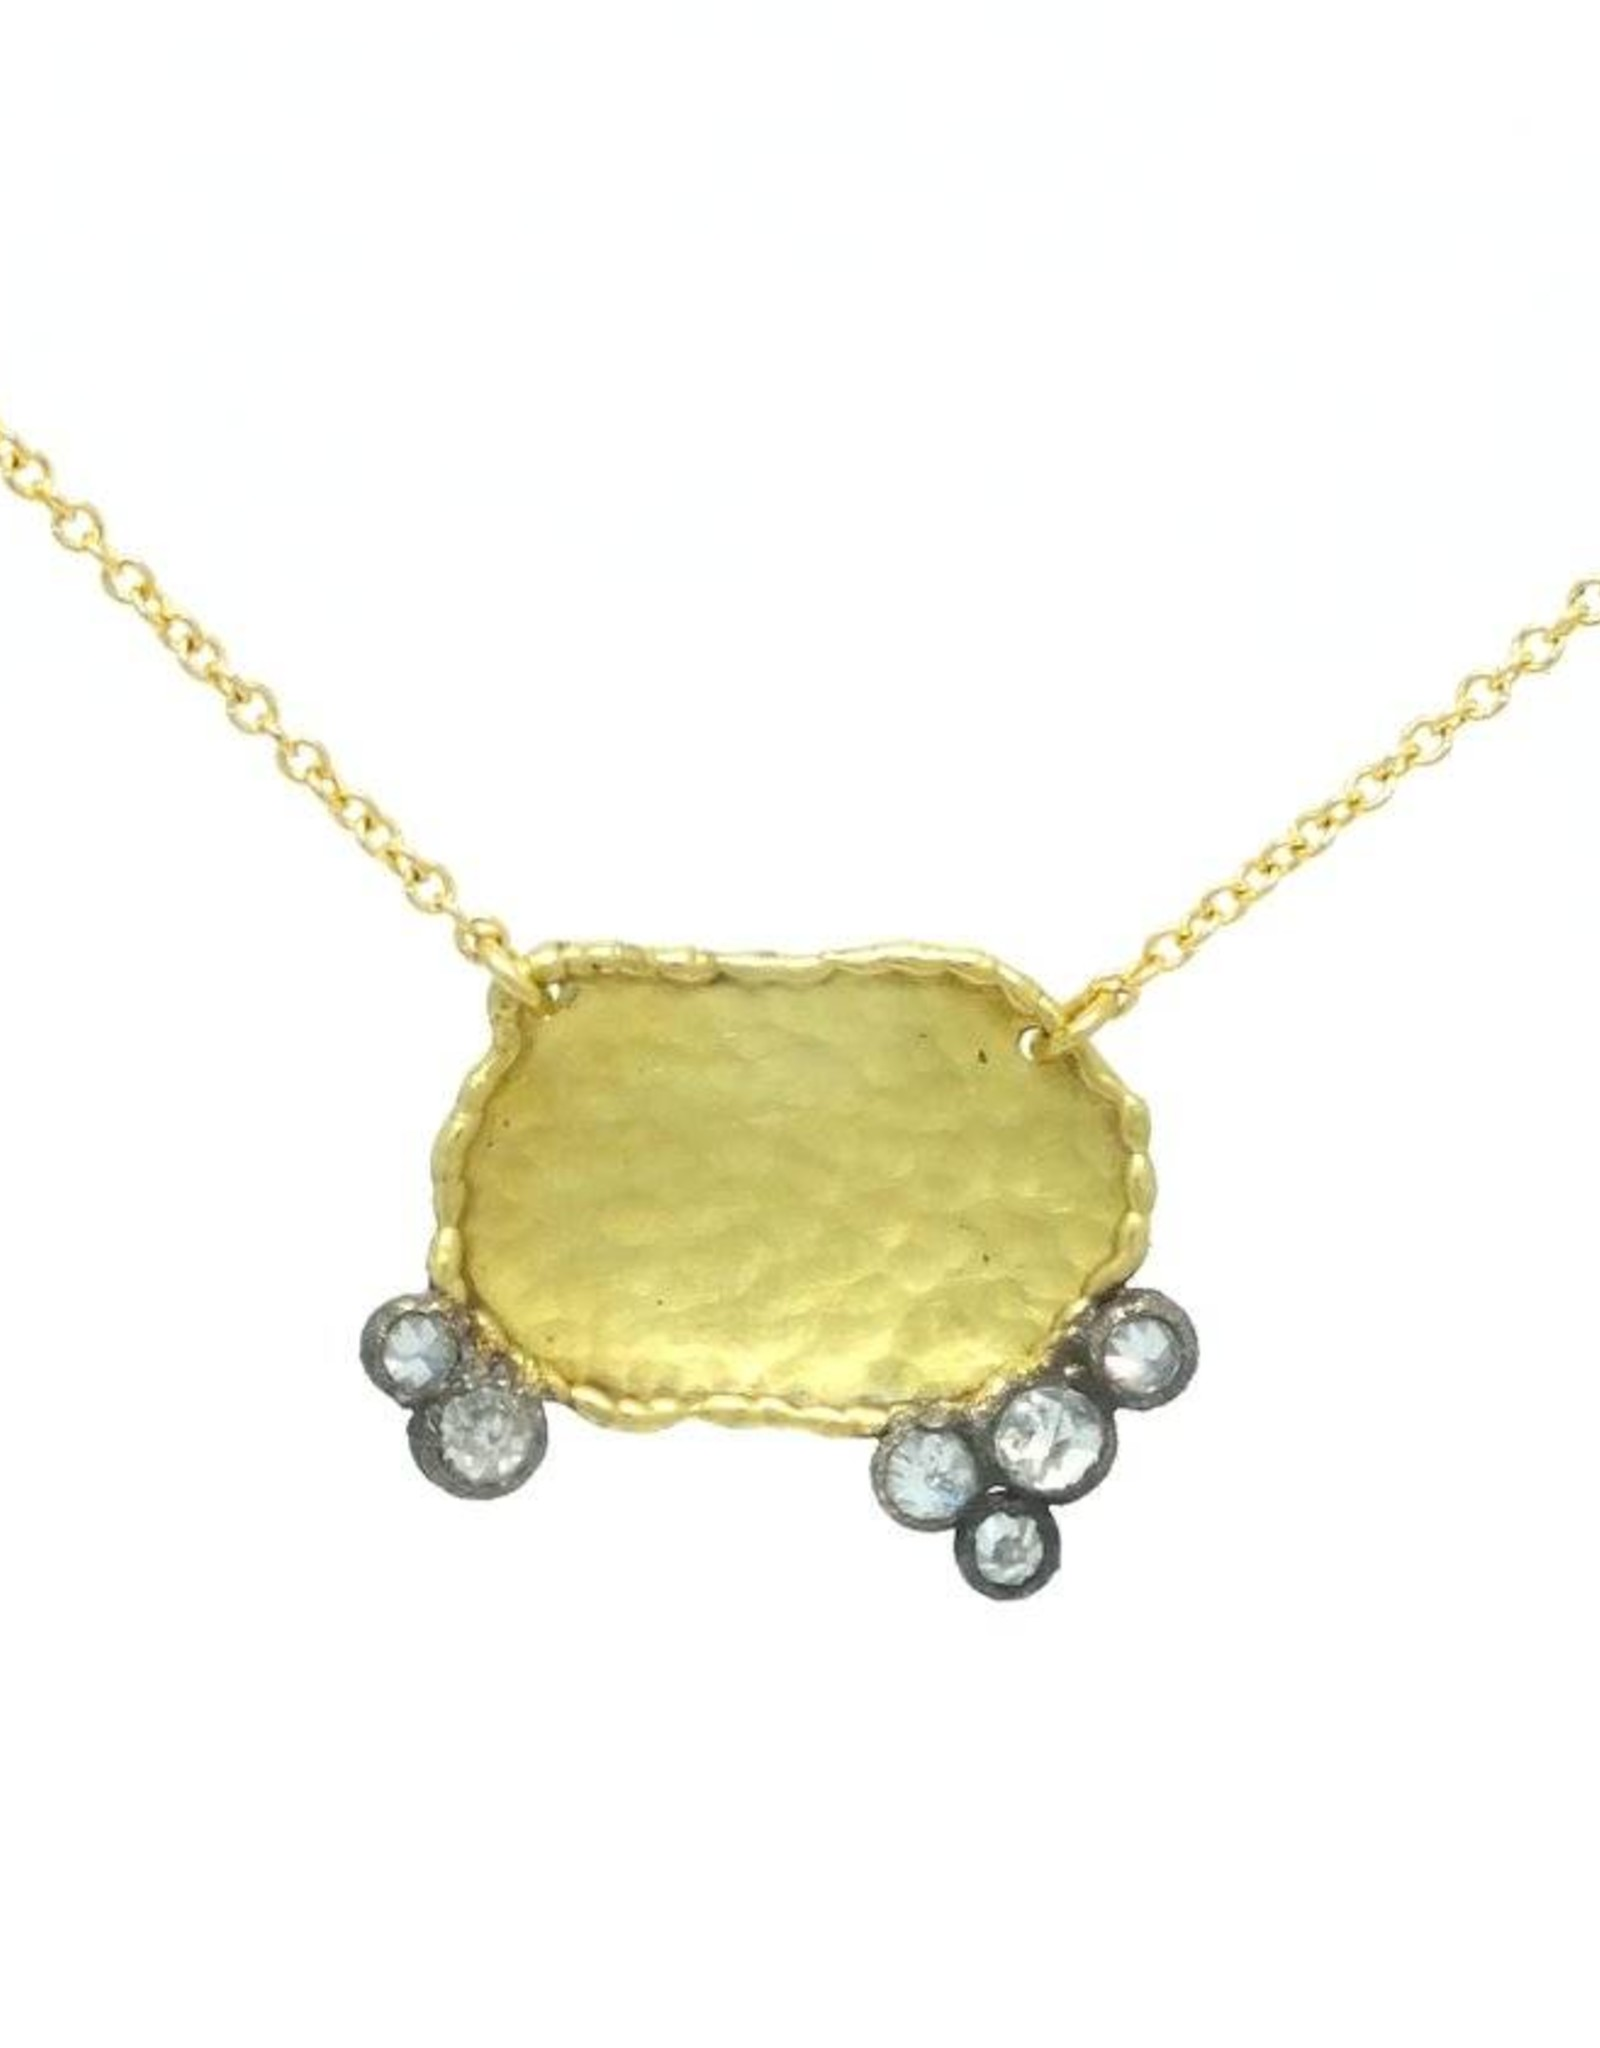 TAP by Todd Pownell Irregular Disc Necklace with 6 Diamonds